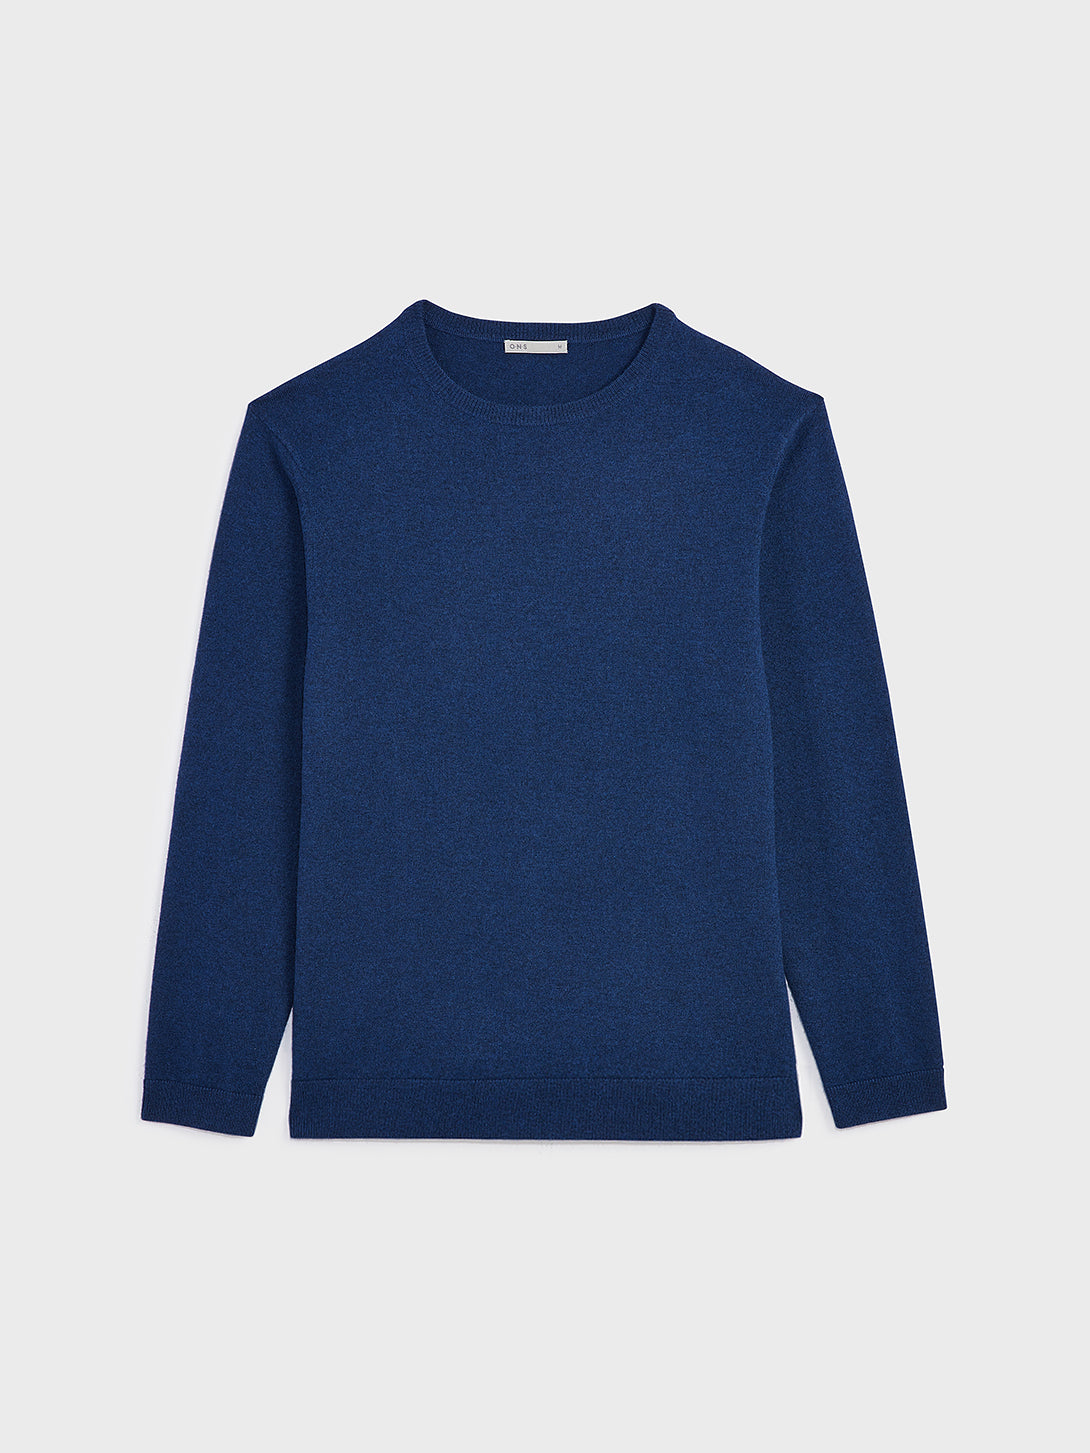 ONS Clothing Men's sweater in COBALT BLUE